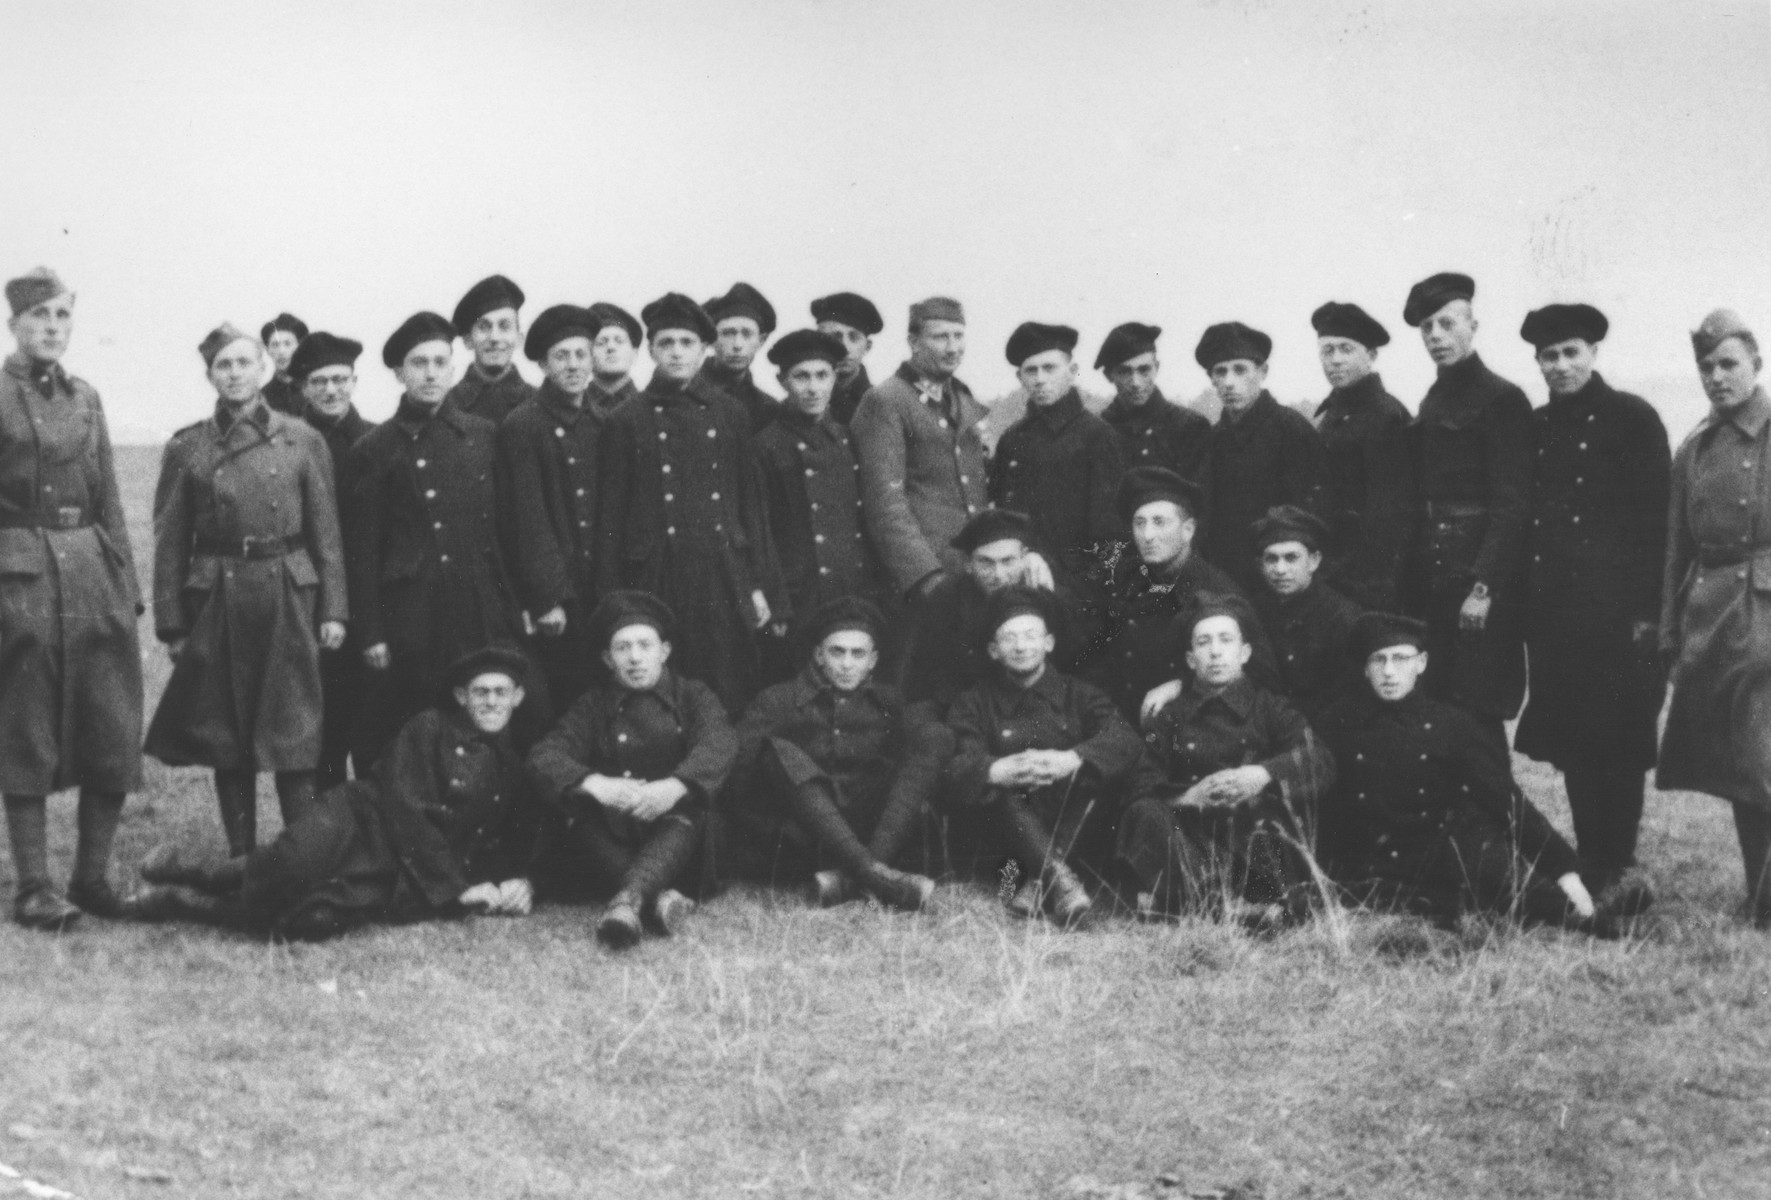 Group portrait of Jewish members of the Sixth Labor Battalion (VI Prapor) at a Slovak labor camp.